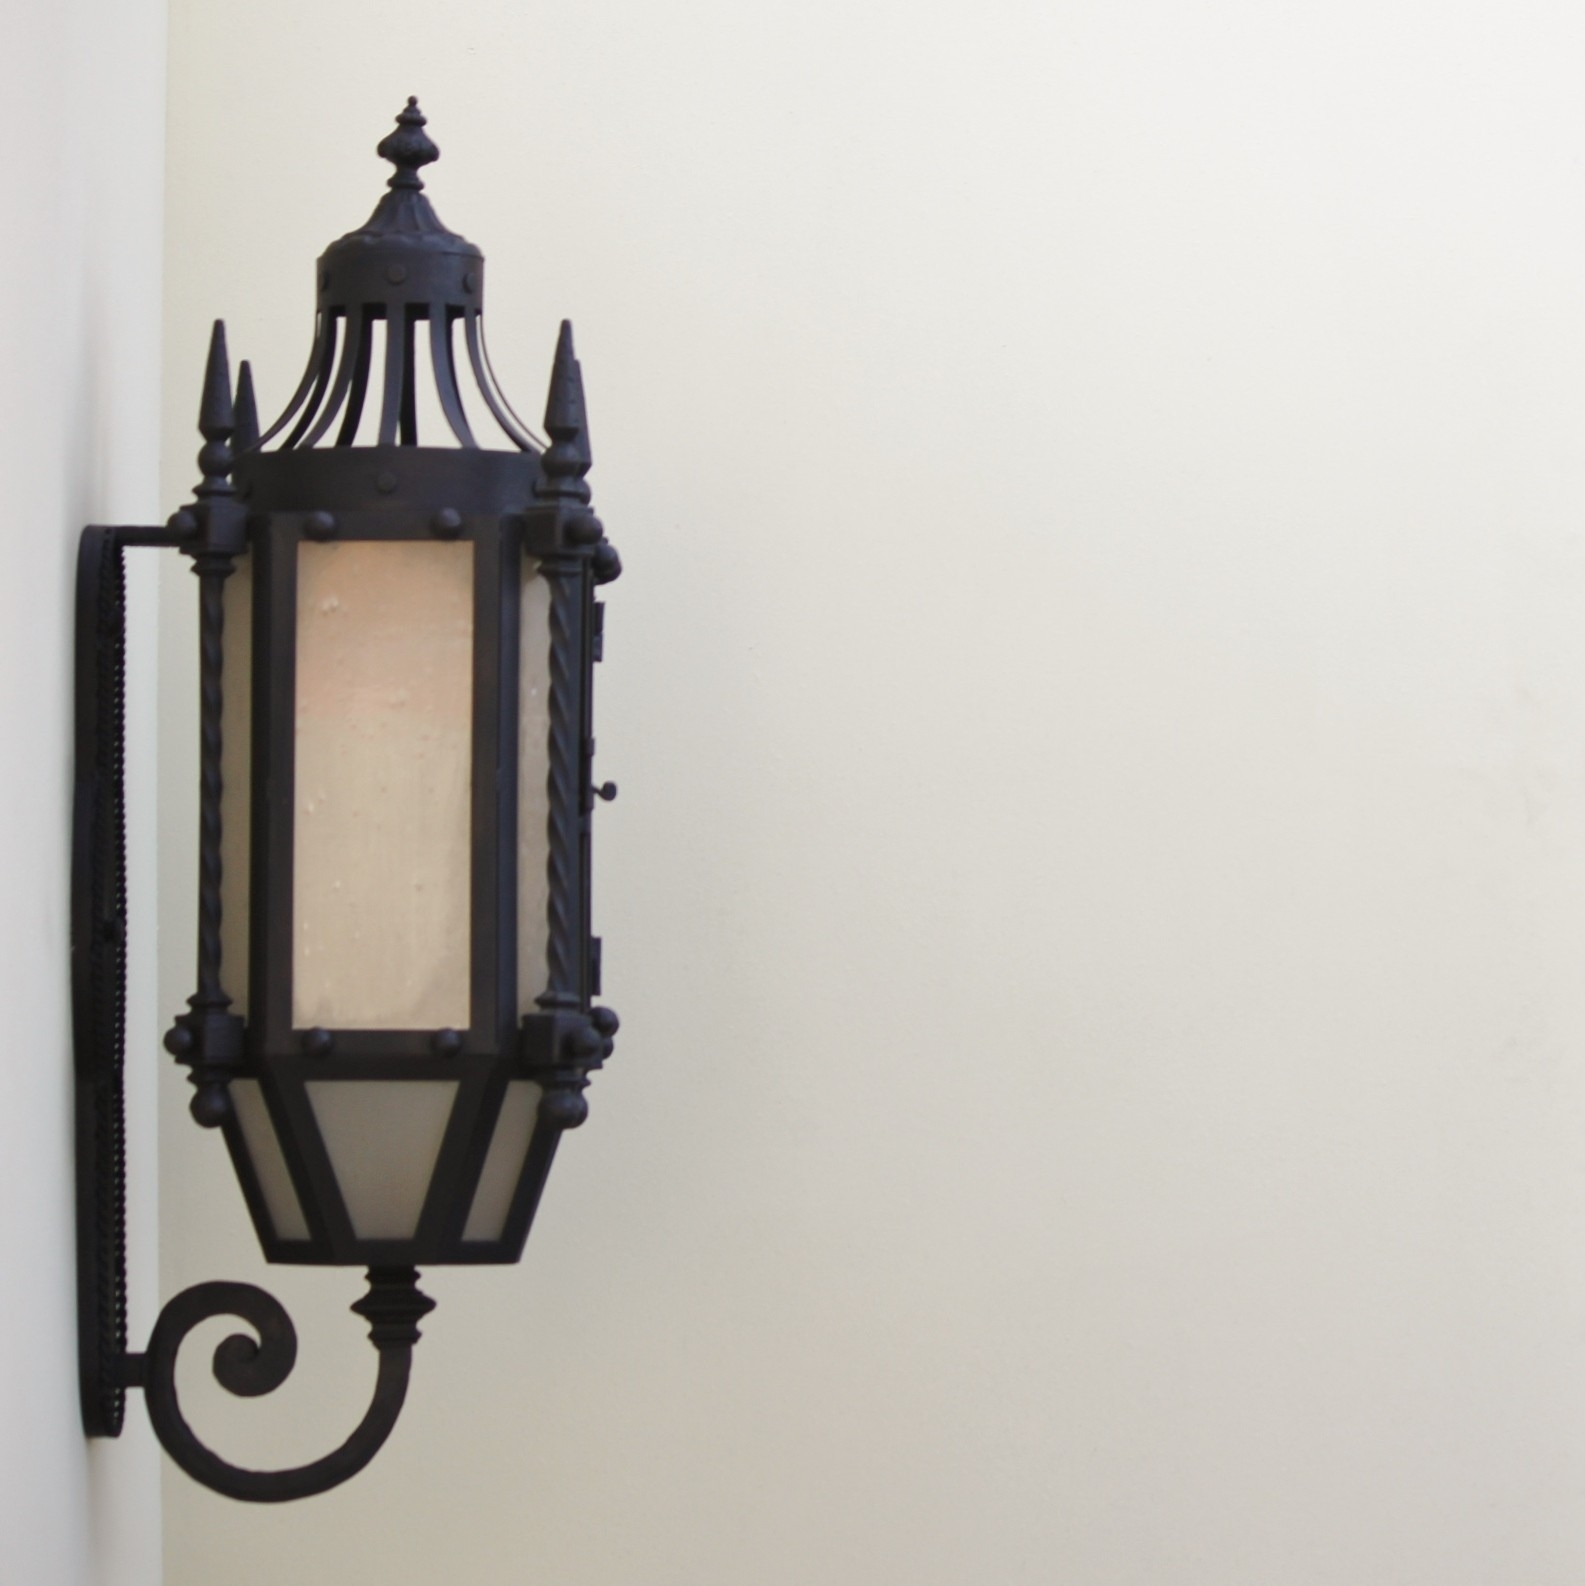 Lights Of Tuscany 7048 3 Wrought Iron Gothic/ Medieval Style Wall Inside Gothic Outdoor Wall Lighting (View 7 of 15)